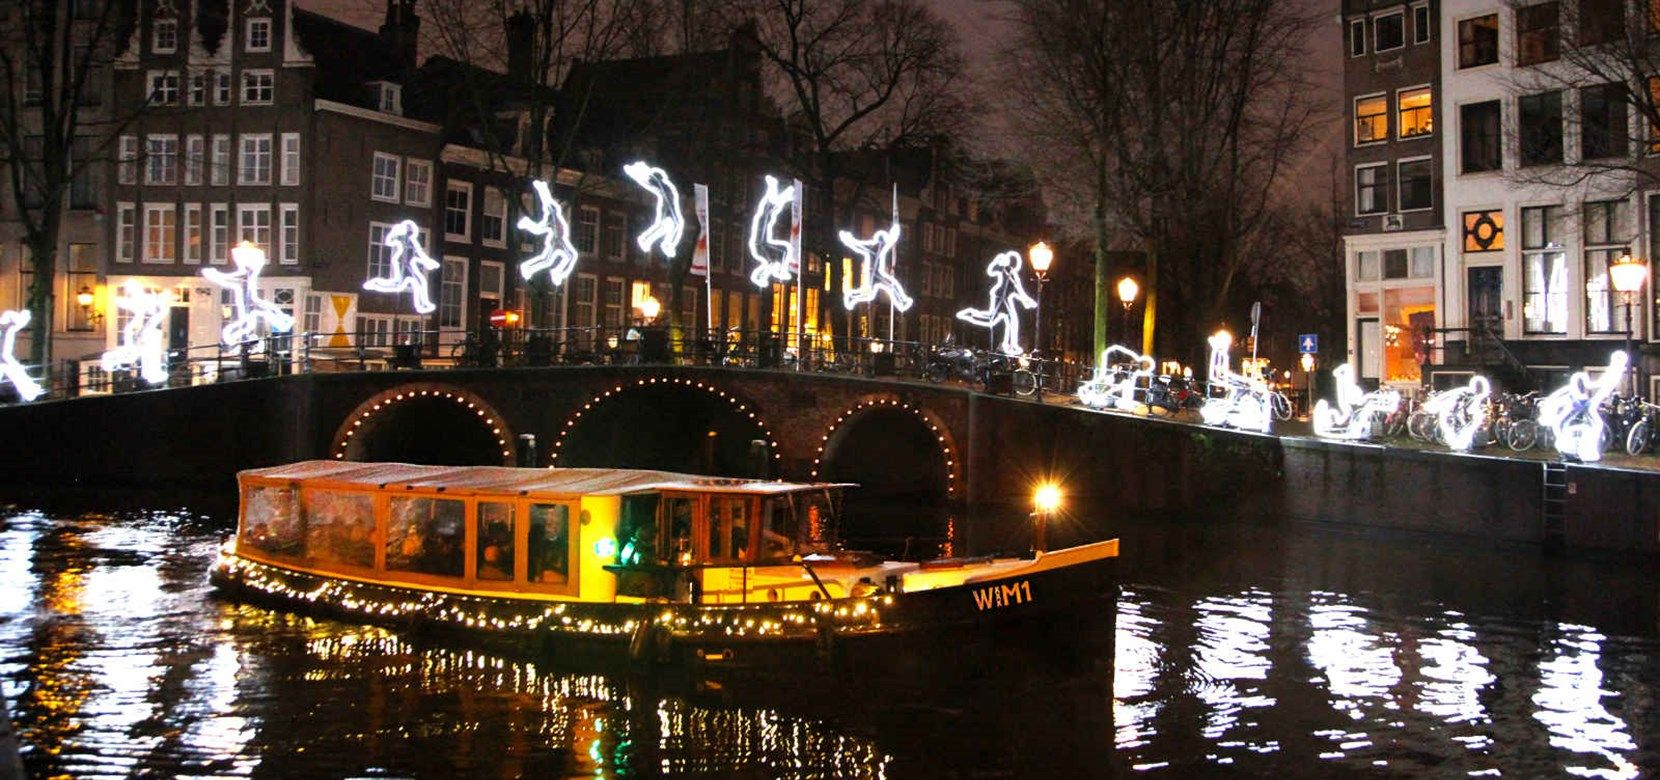 Lovers Canal Cruises Offers Various Types Of Amsterdam Light Festival Cruises Queues With Dj S Music On The Quay At Amsterda Tour Tickets Amsterdam Boat Tours